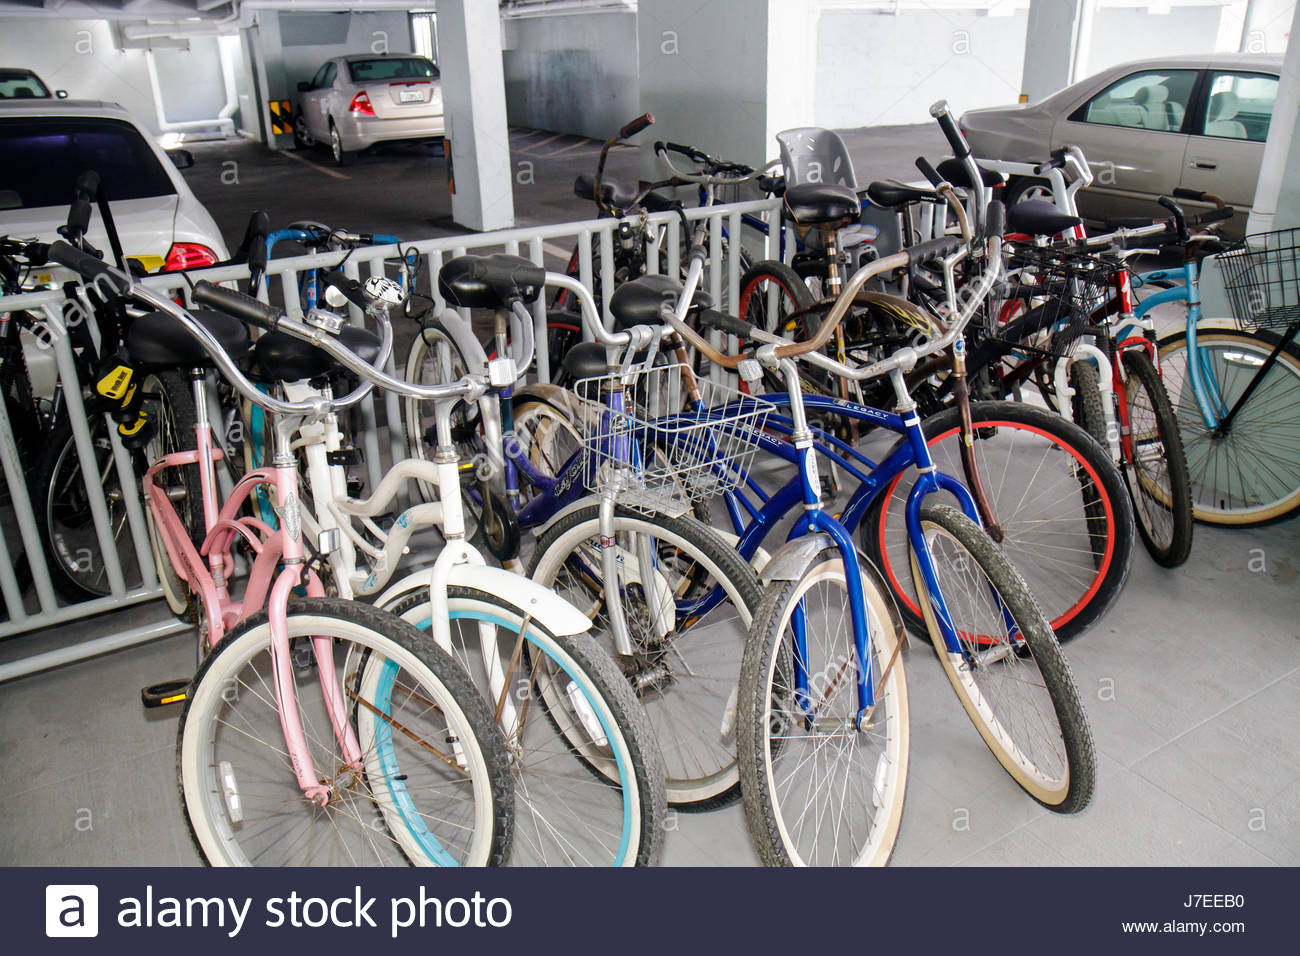 Parking Garage Bike Rack Miami Beach Florida The Presidential Condominium Building Bicycles